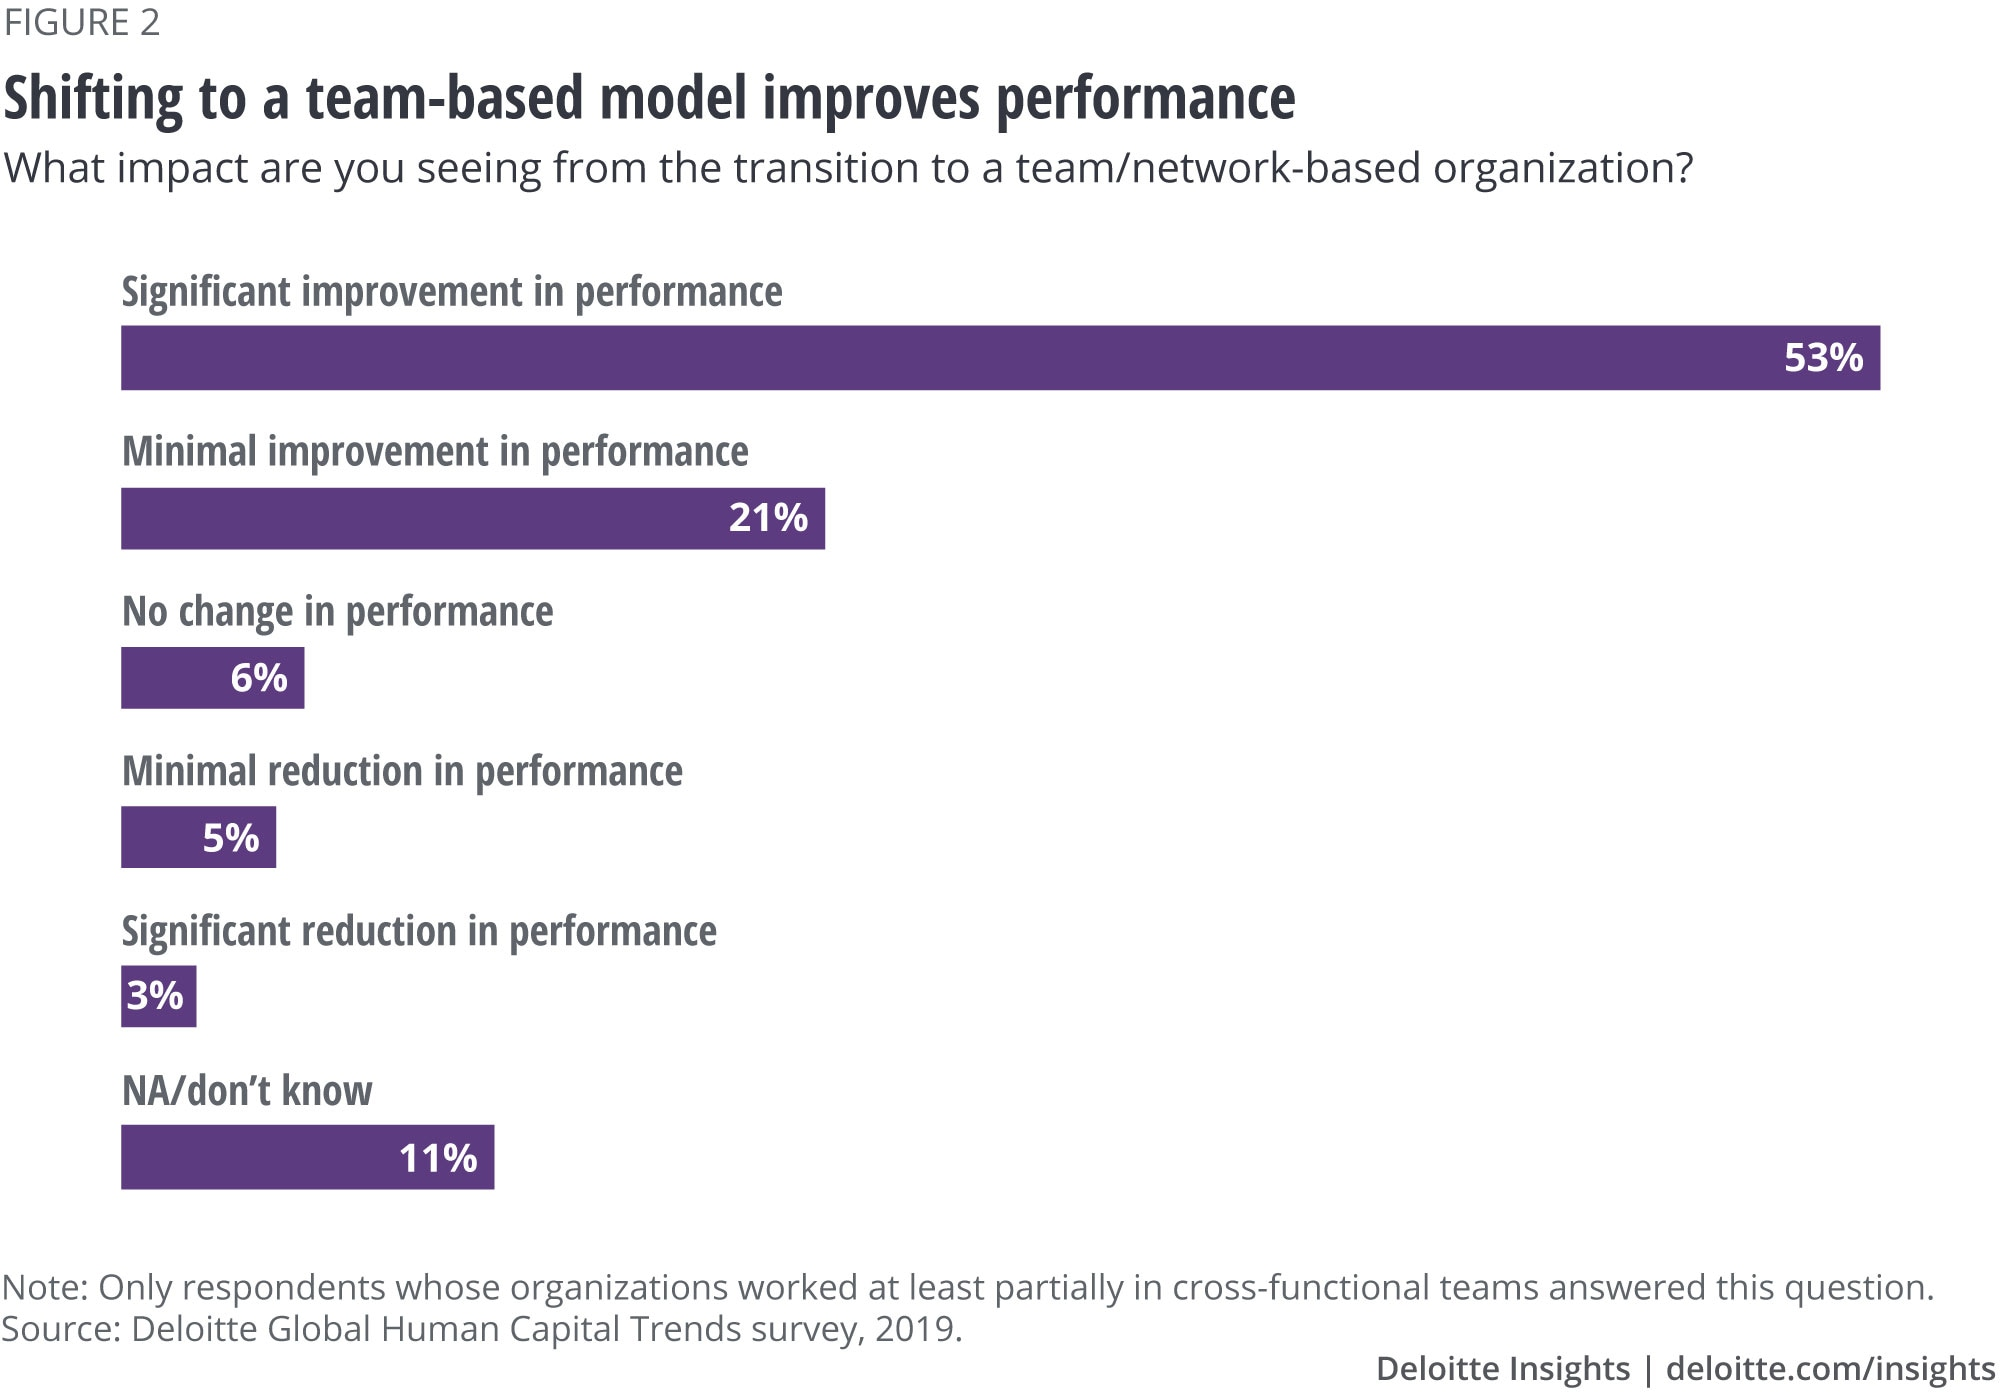 Shifting to a team-based model improves performance